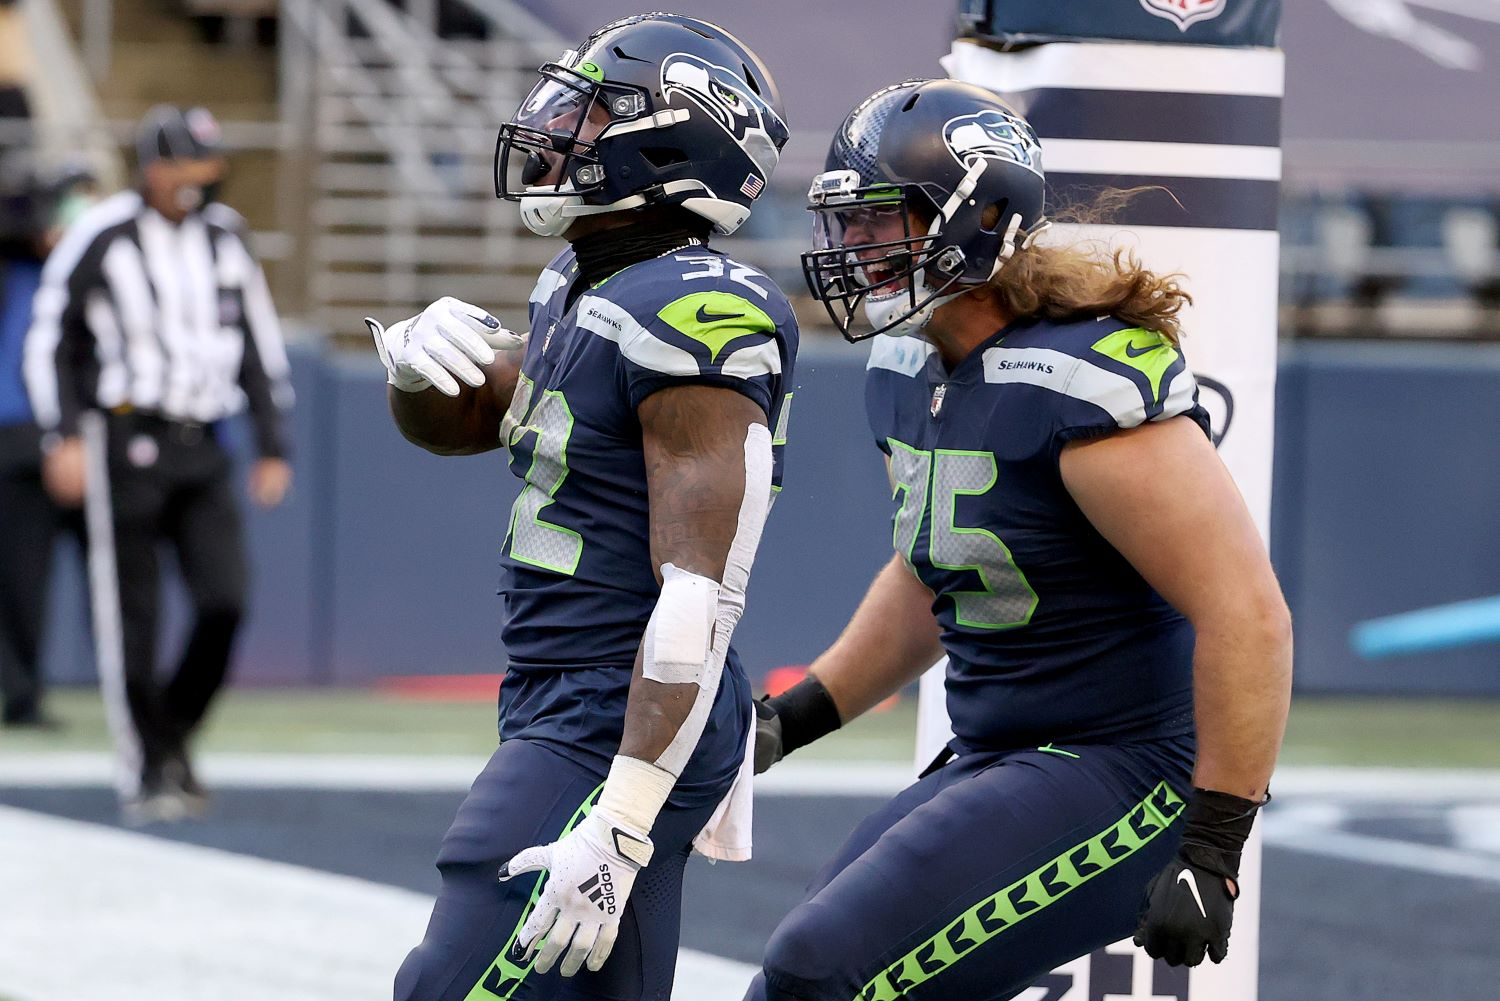 Former Seahawks OL Chad Wheeler reportedly had a wild struggle with police during his recent domestic violence arrest.